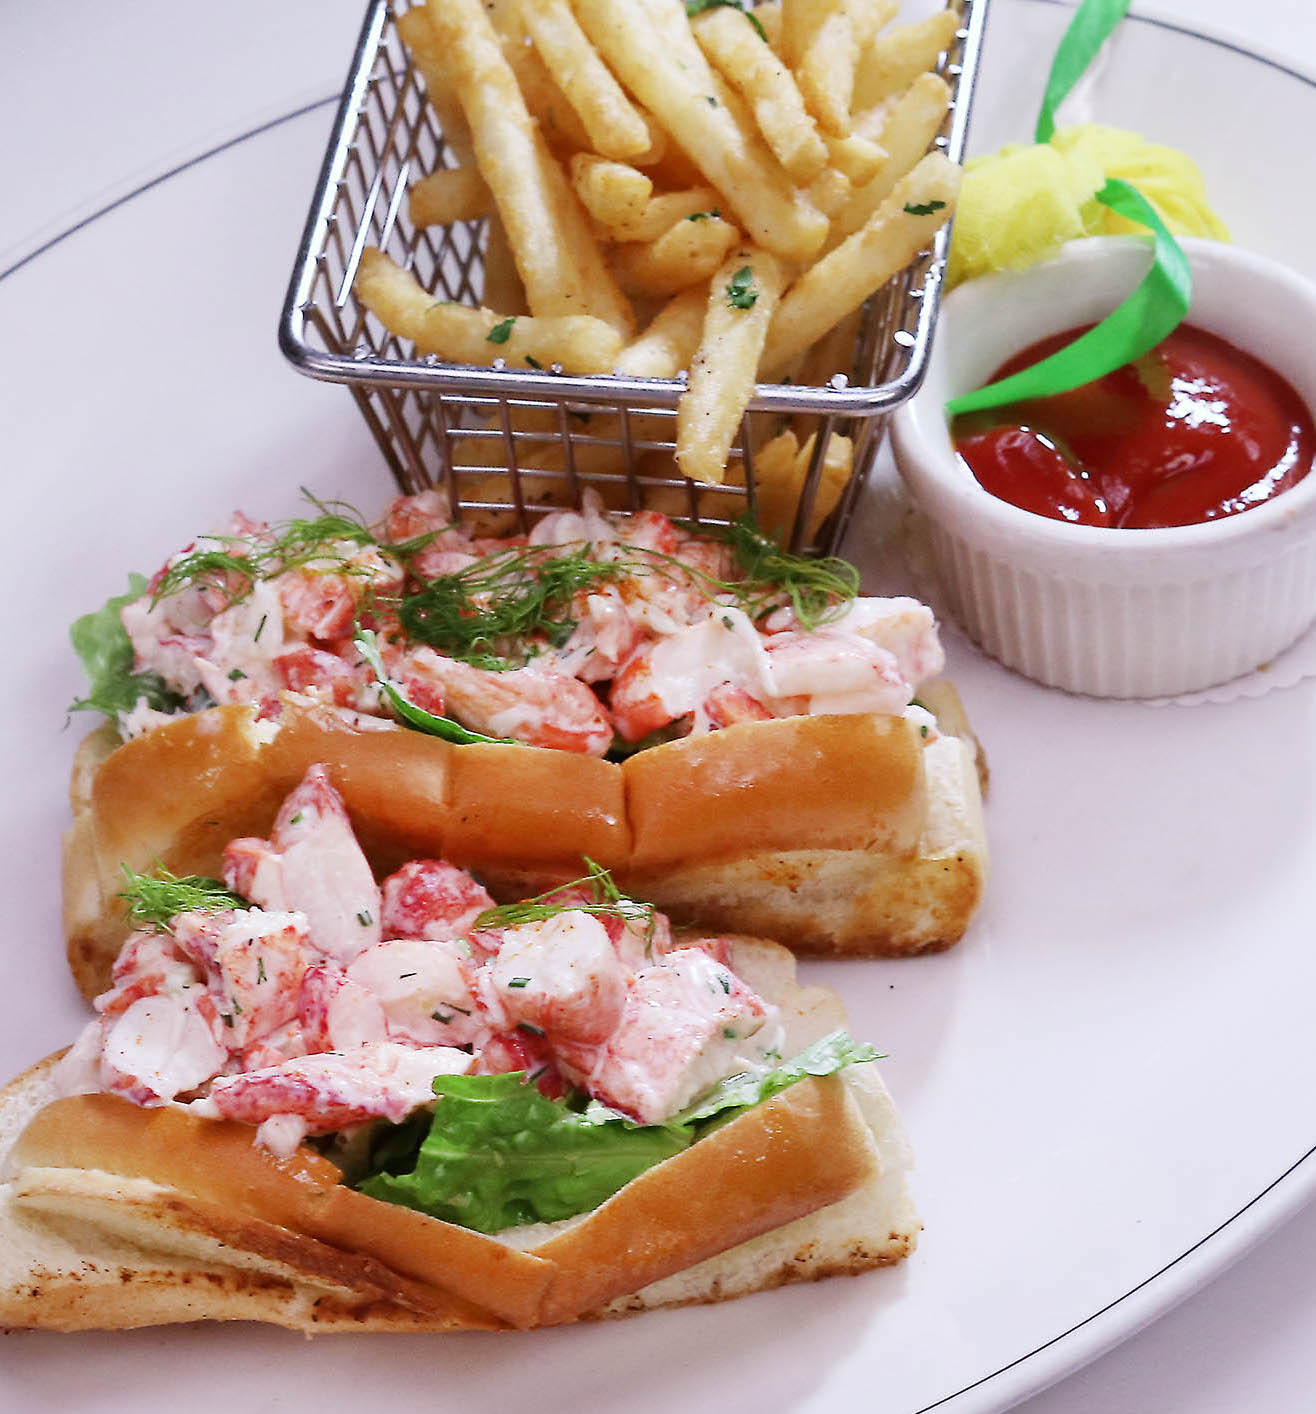 picture of Lobster Roll with French Fries and a side of ketchup